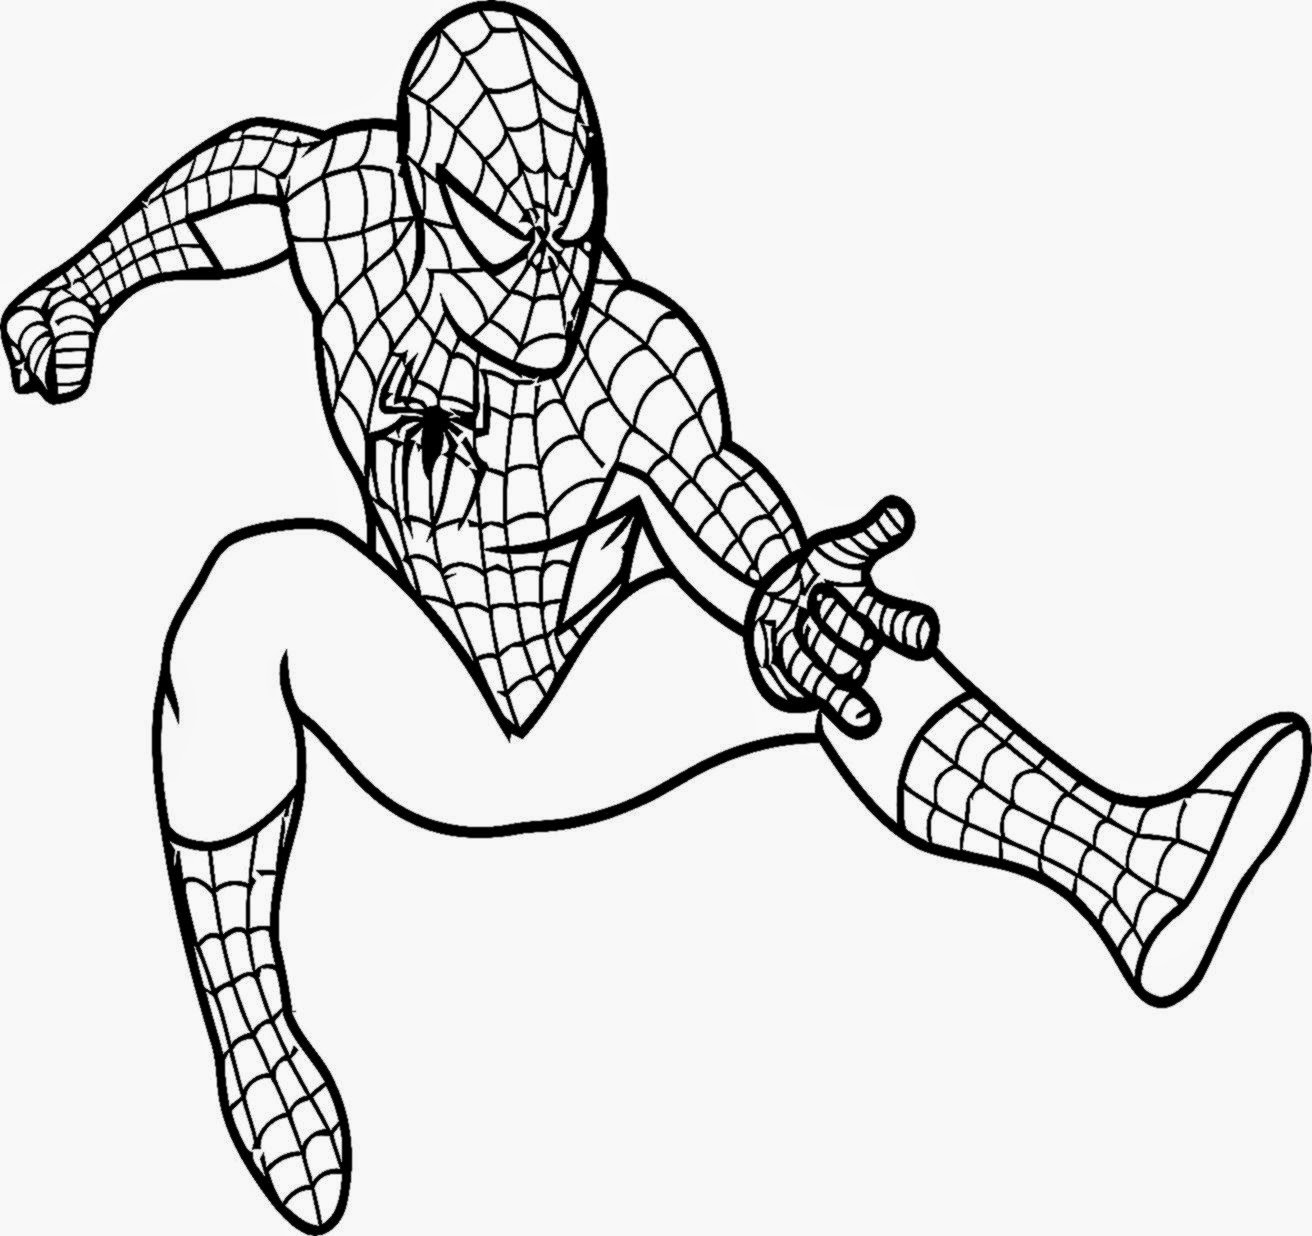 Spiderman color sheets free coloring sheet for Spiderman coloring book pages